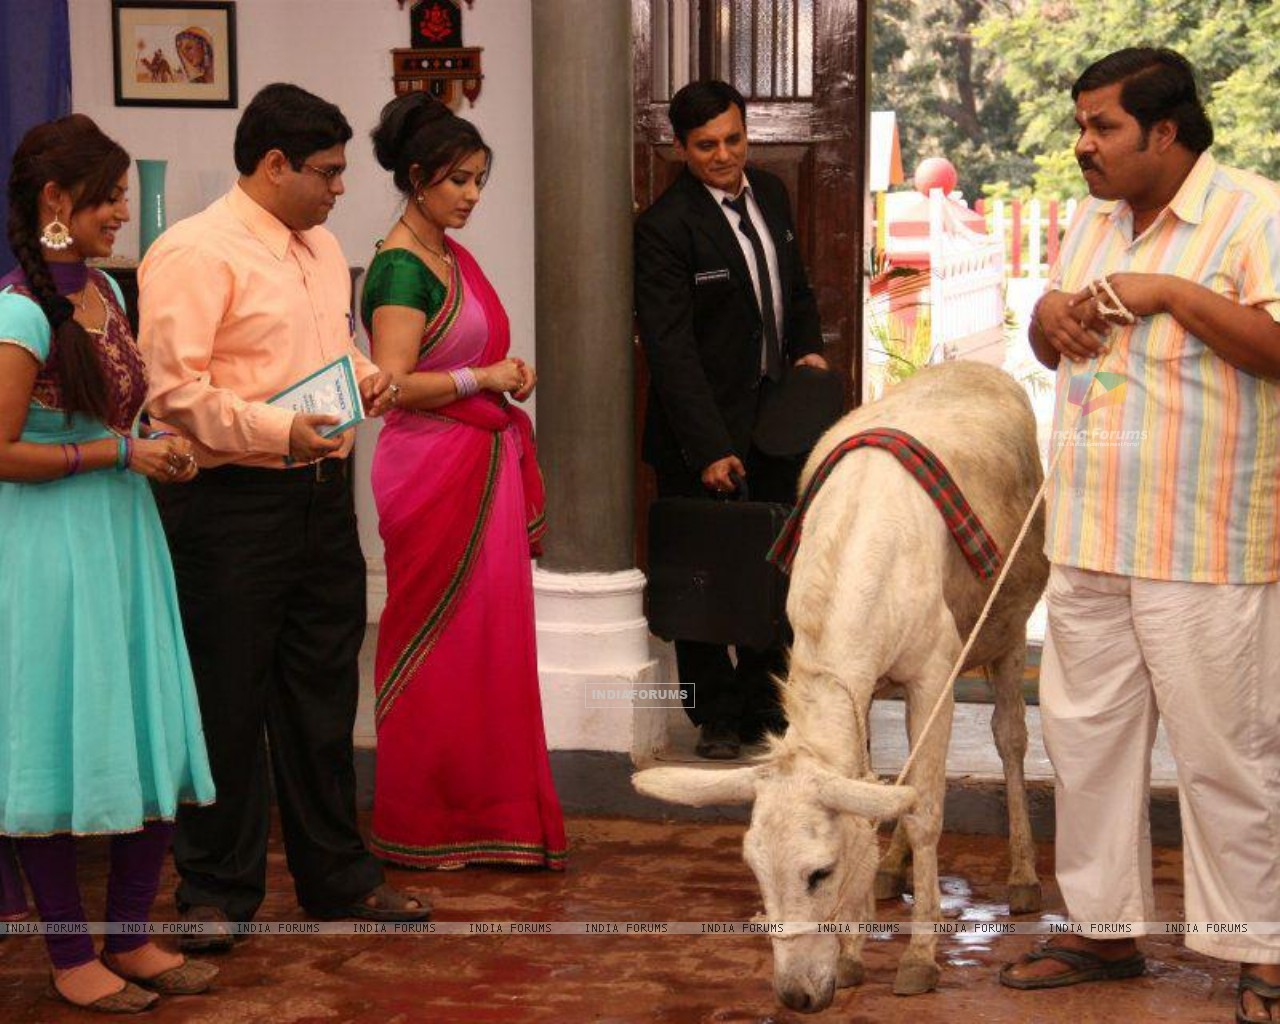 Debina Bonnerjee, Shilpa Shinde, Paresh Ganatra, Sumit Arora on the Sets of CG (200129) size:1280x1024